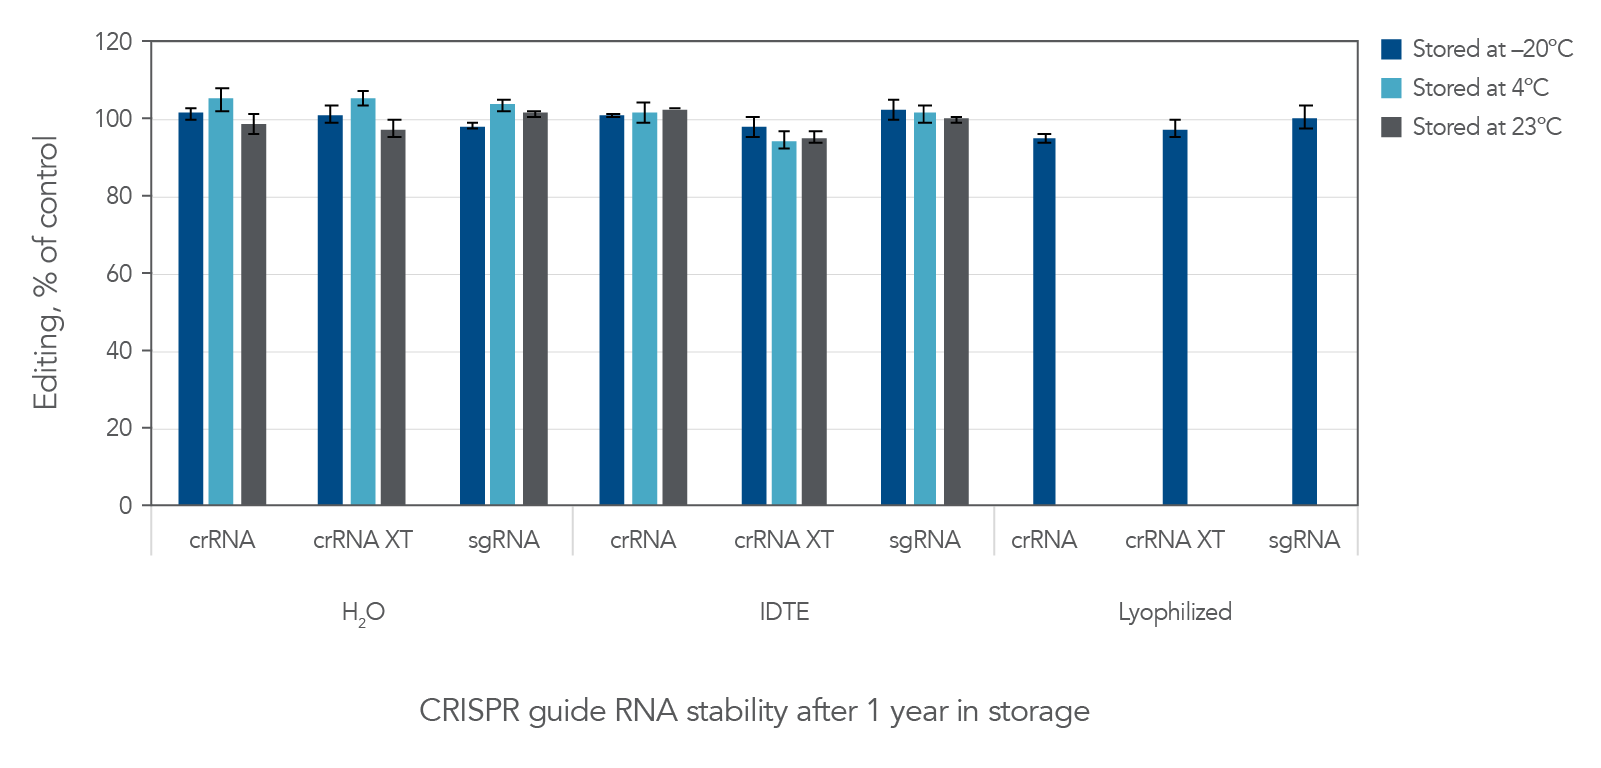 CRISPR gRNA is stable over 1 year